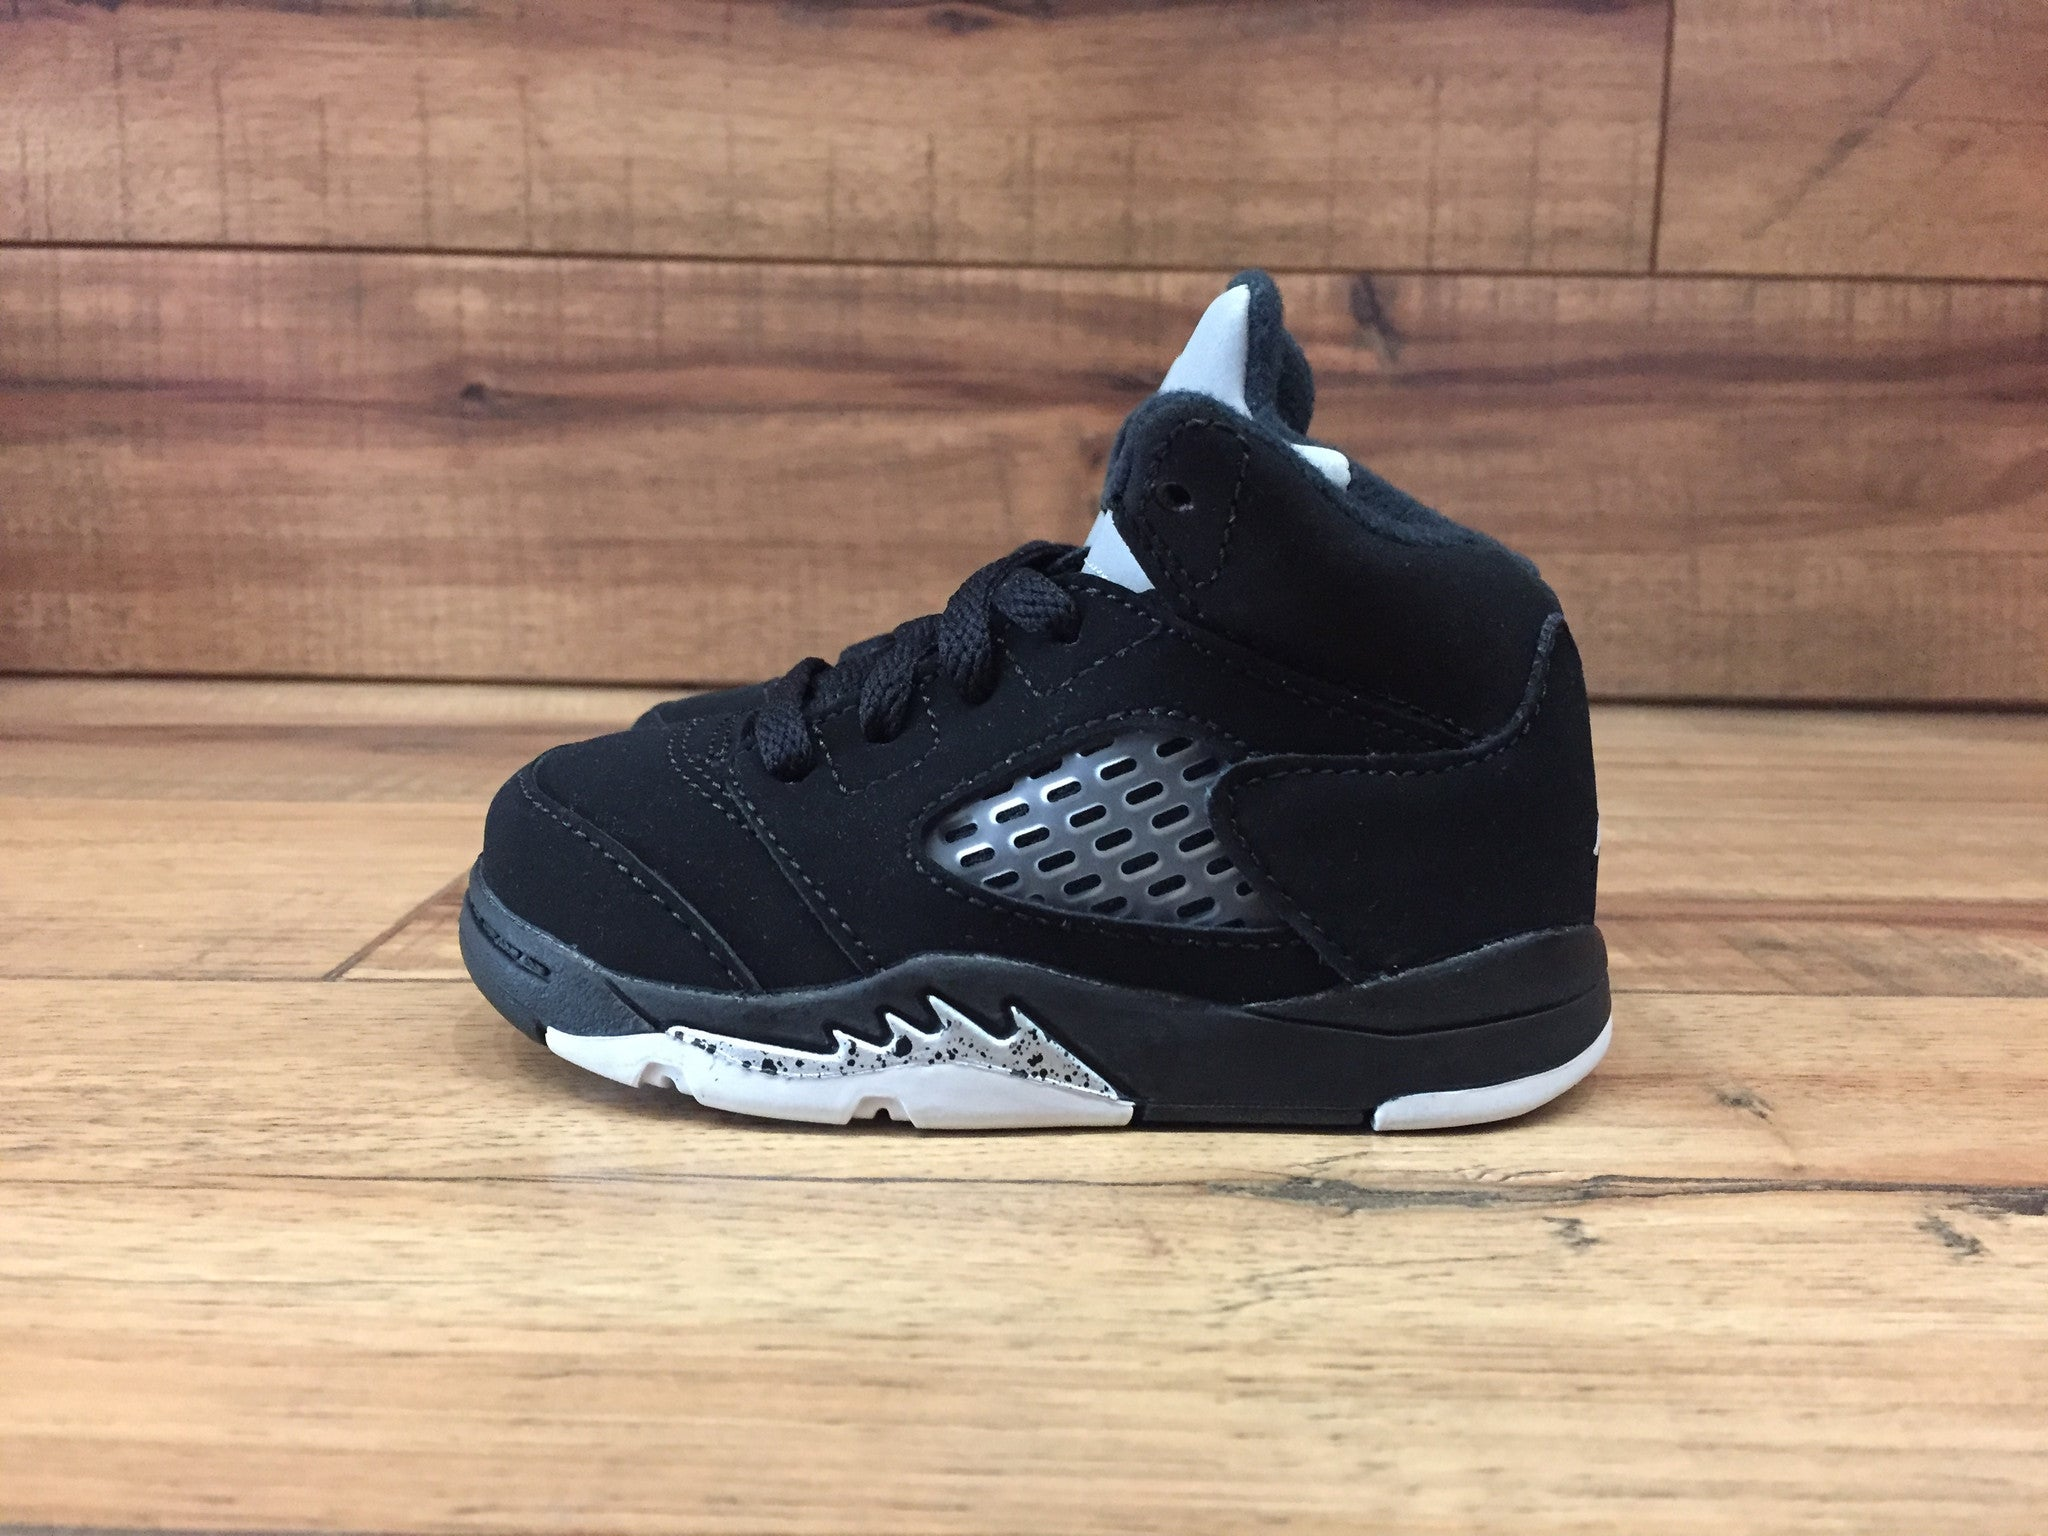 cb7a4d3db8db85 Nike Air Jordan 5 OG metallic black toddler (440890 003 ...